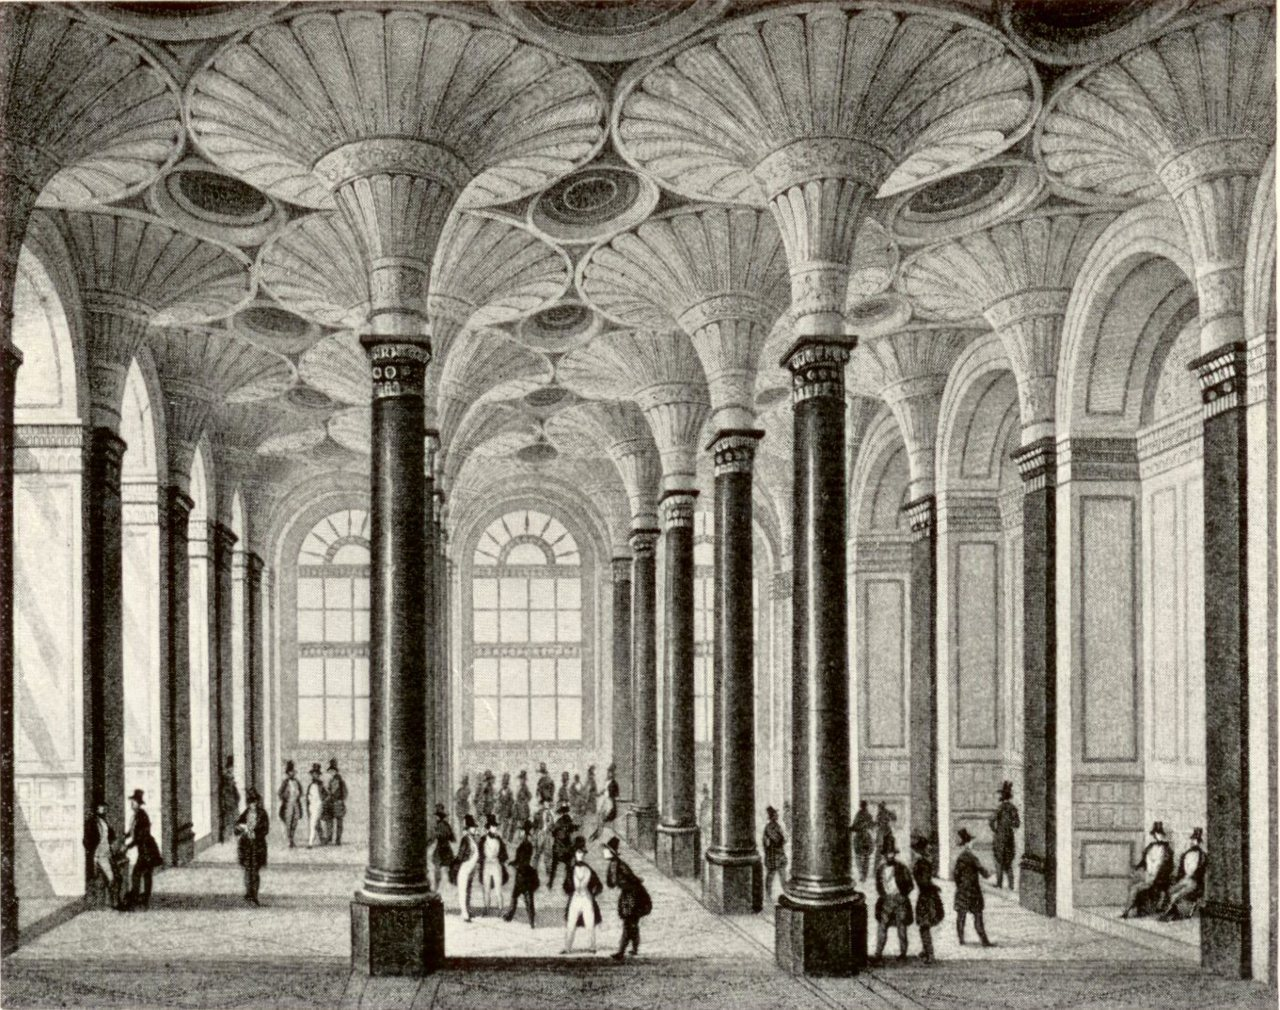 Inside the old stock exchange in 1845, Frankfurt